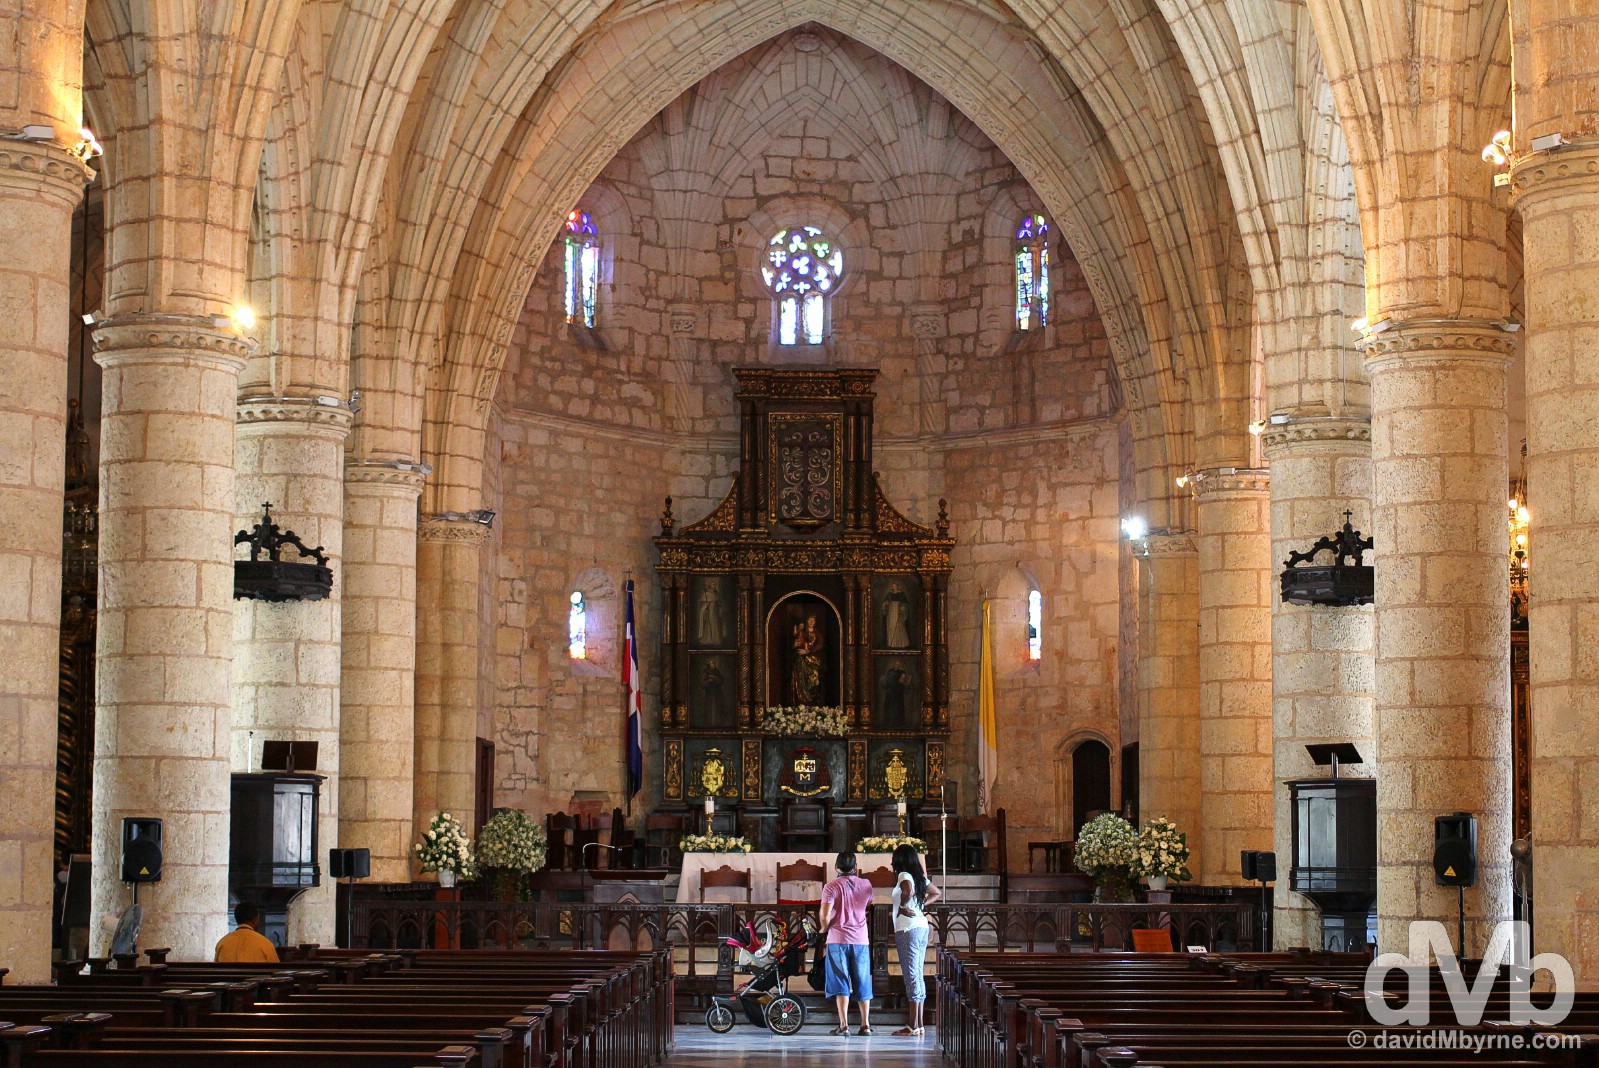 The interior of the Catedral Primada de America in Zona Colonial, Santo Domingo. Dominican Republic. May 26, 2015.